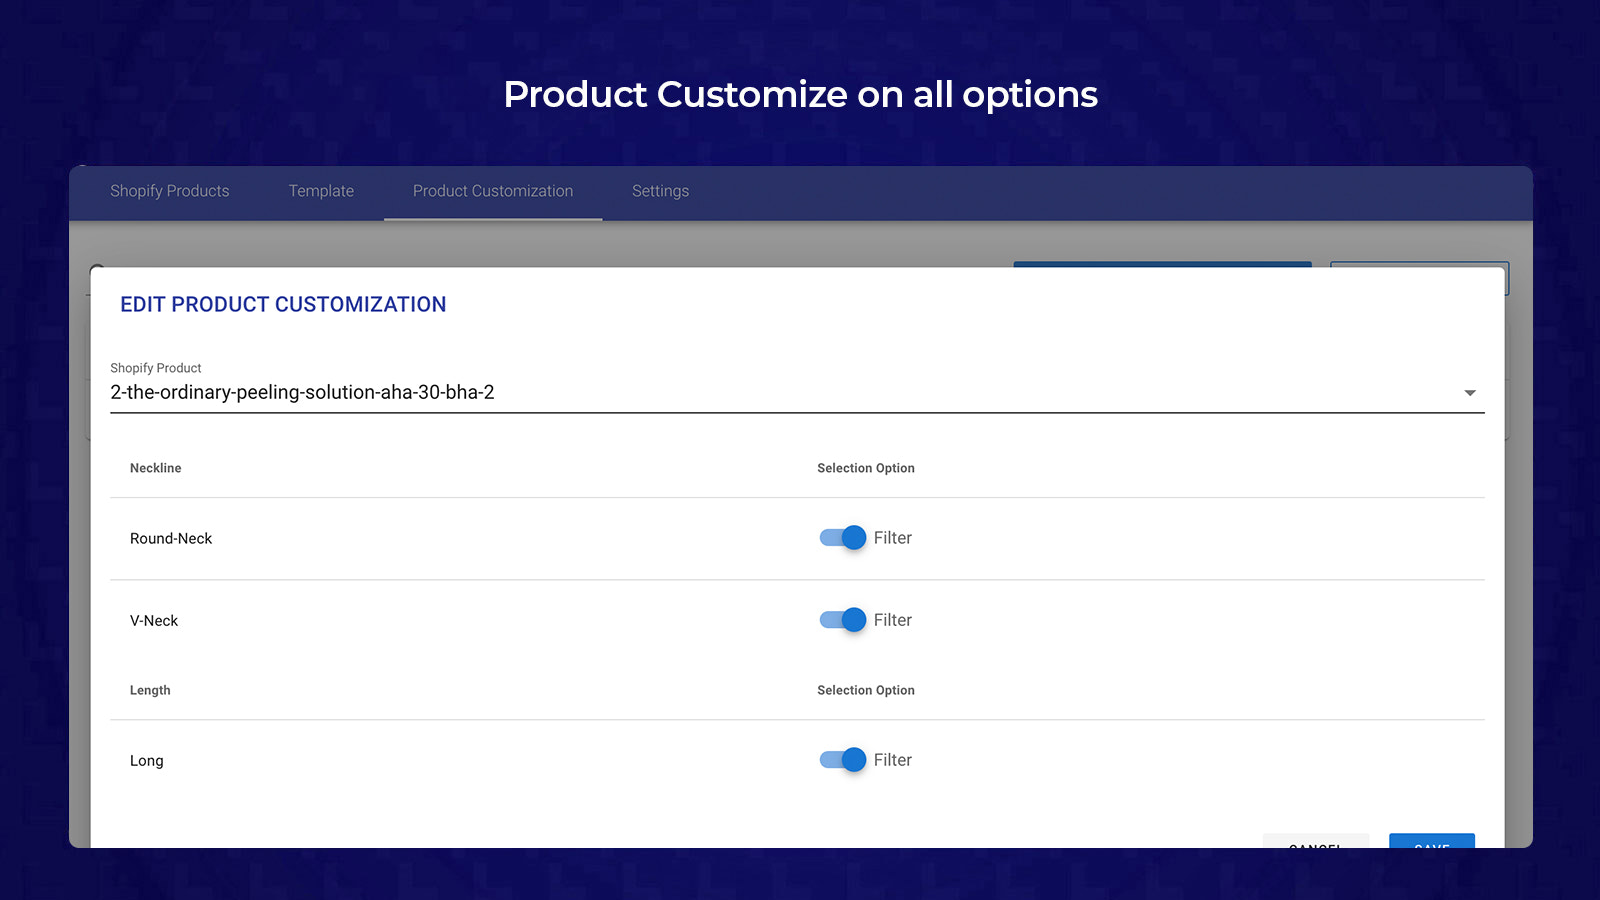 6- Product Customize on all options